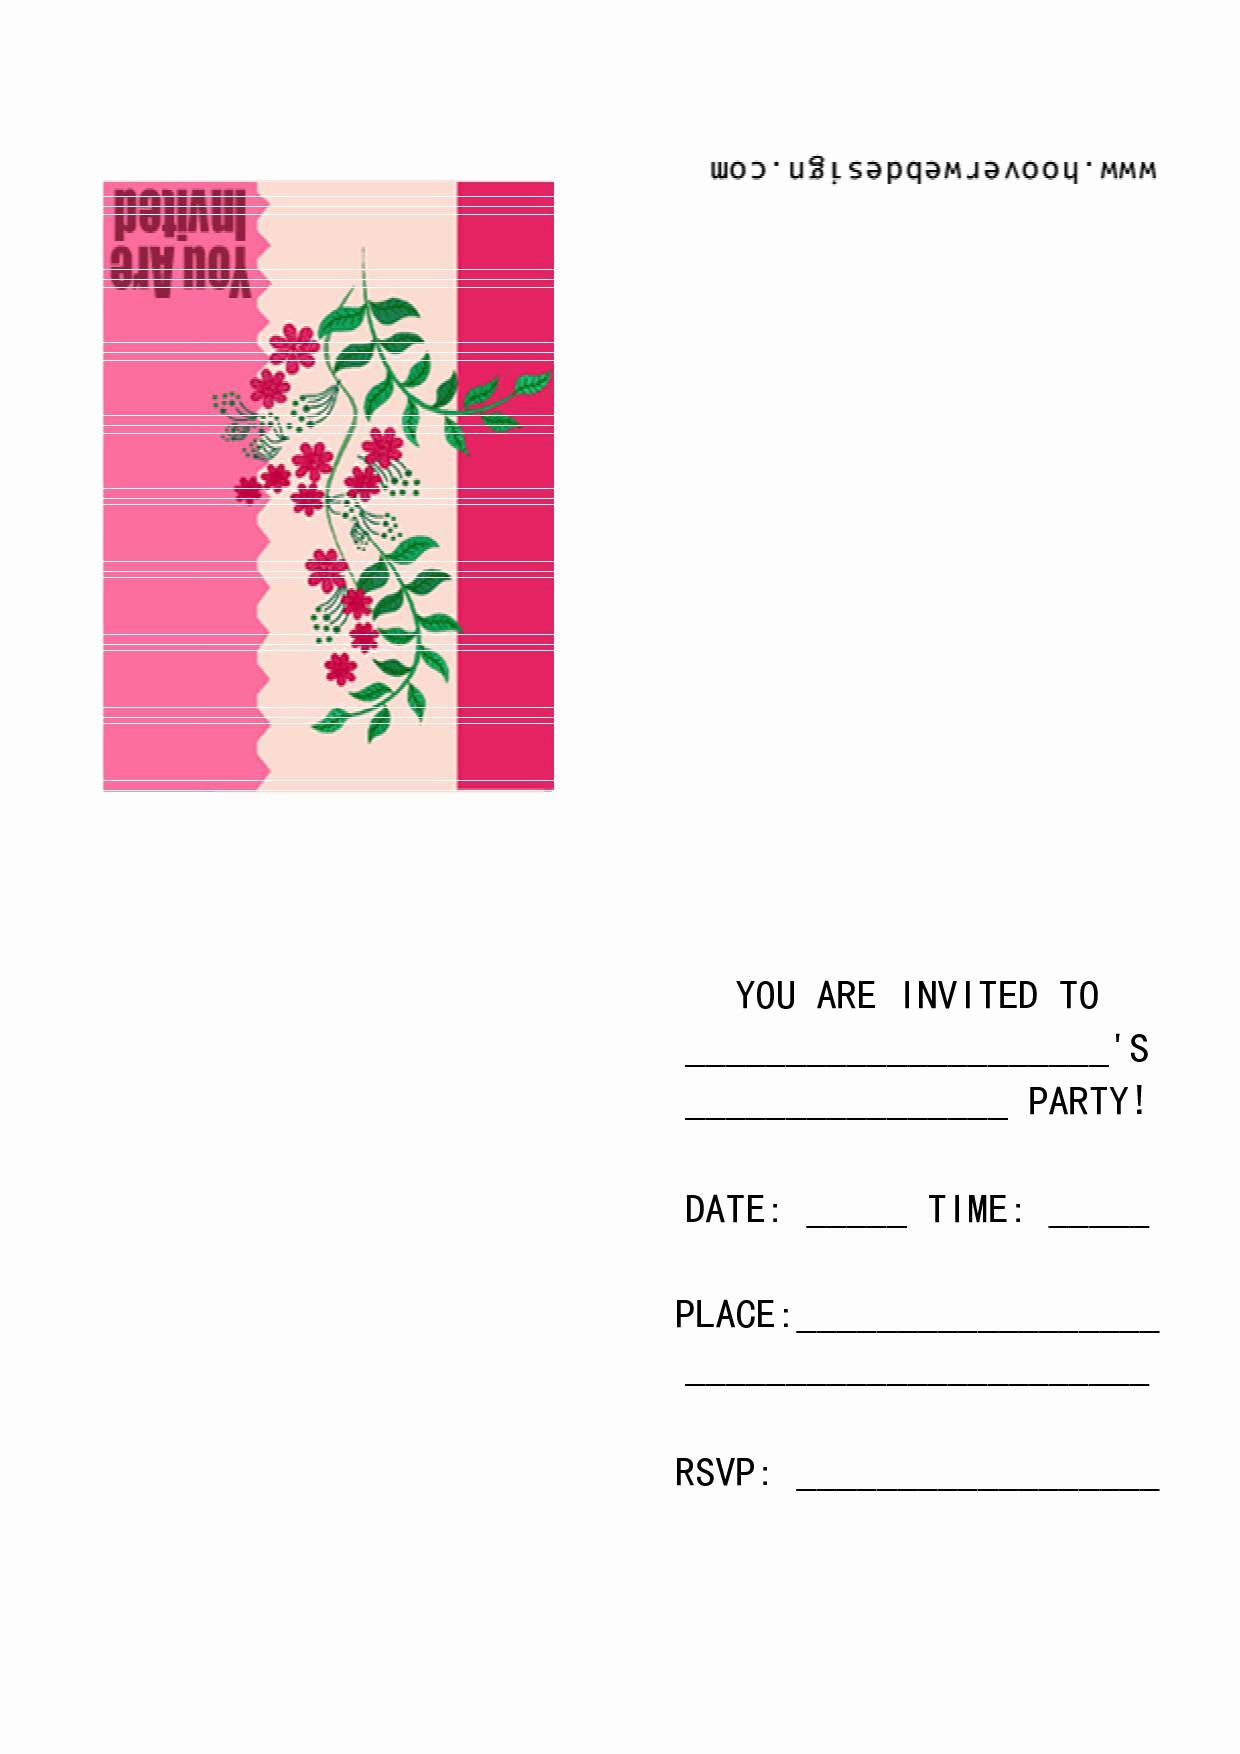 Party Invitations Templates Microsoft Word Beautiful Party Invite Template